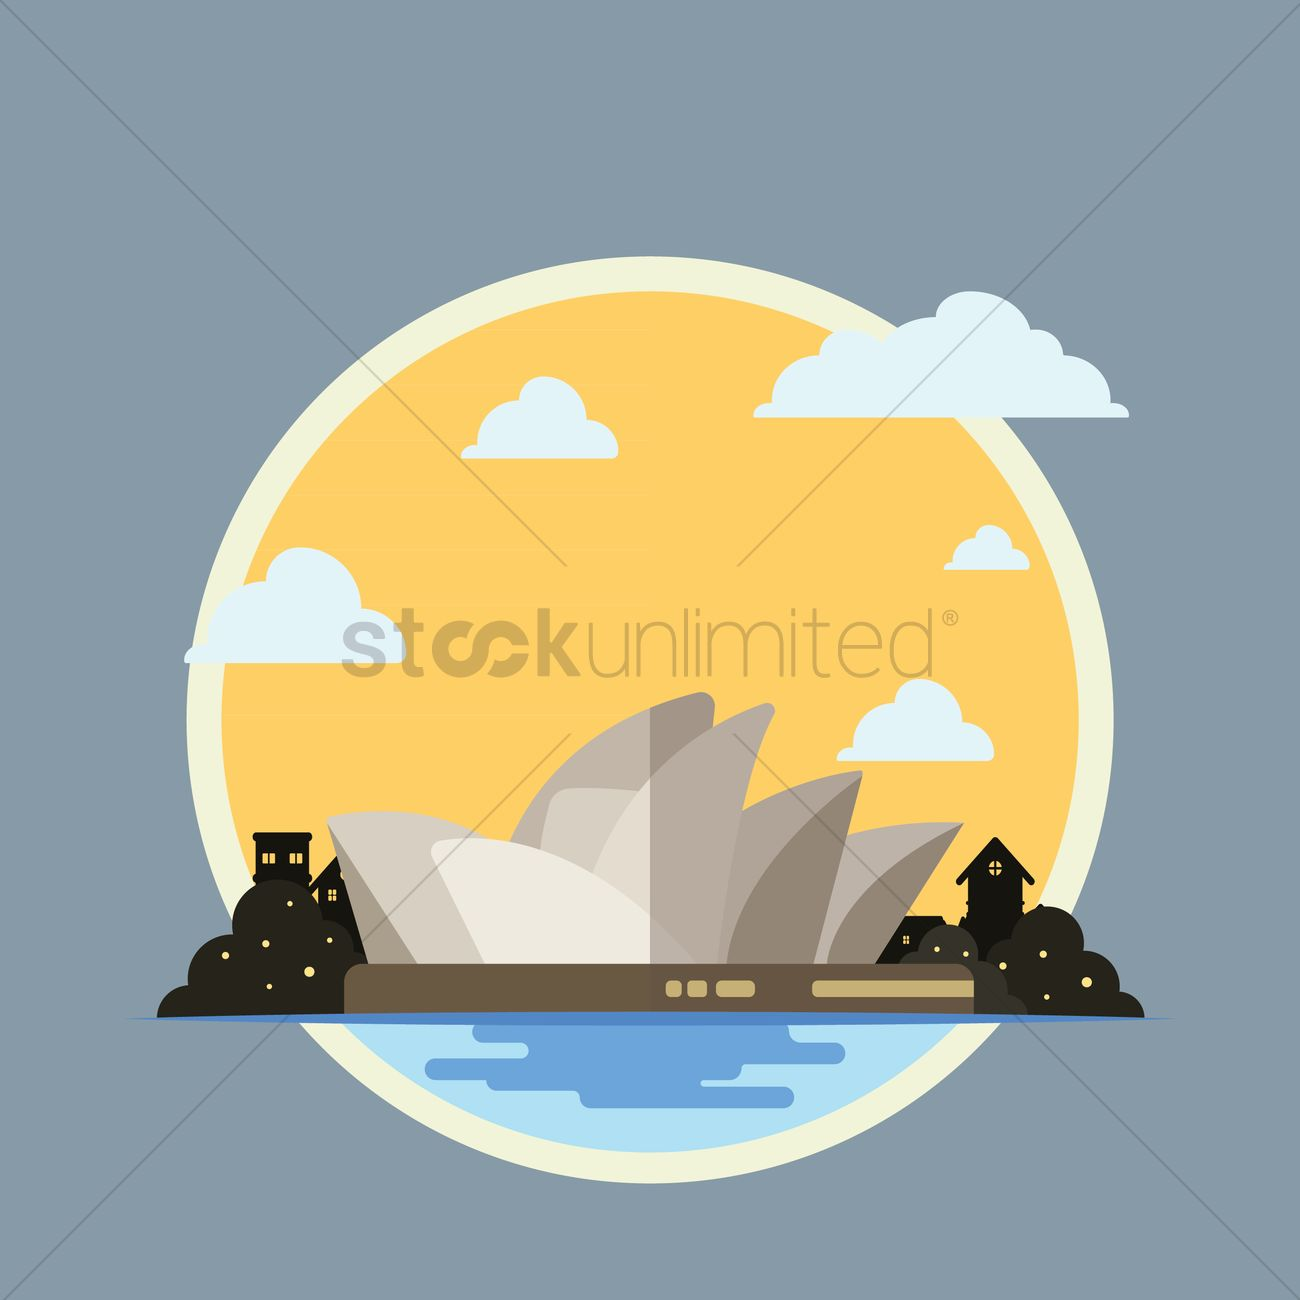 sydney opera house 1316476 - Get Vector Images Of Sydney Opera House  Pictures